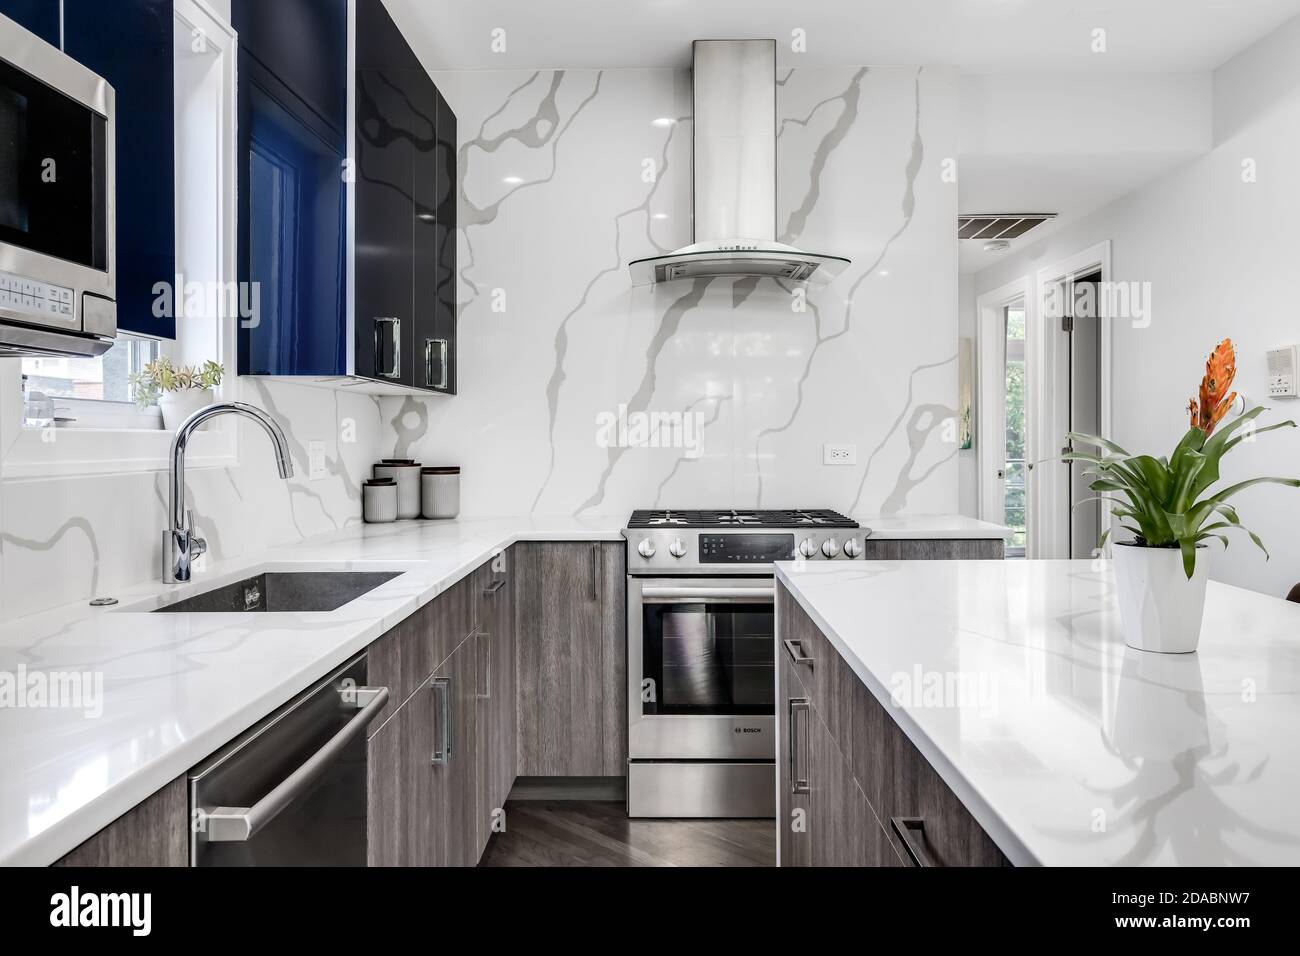 A Modern Kitchen With Blue And Wood Two Toned Cabinets With A White Marble Waterfall Island Top And Backsplash Stock Photo Alamy